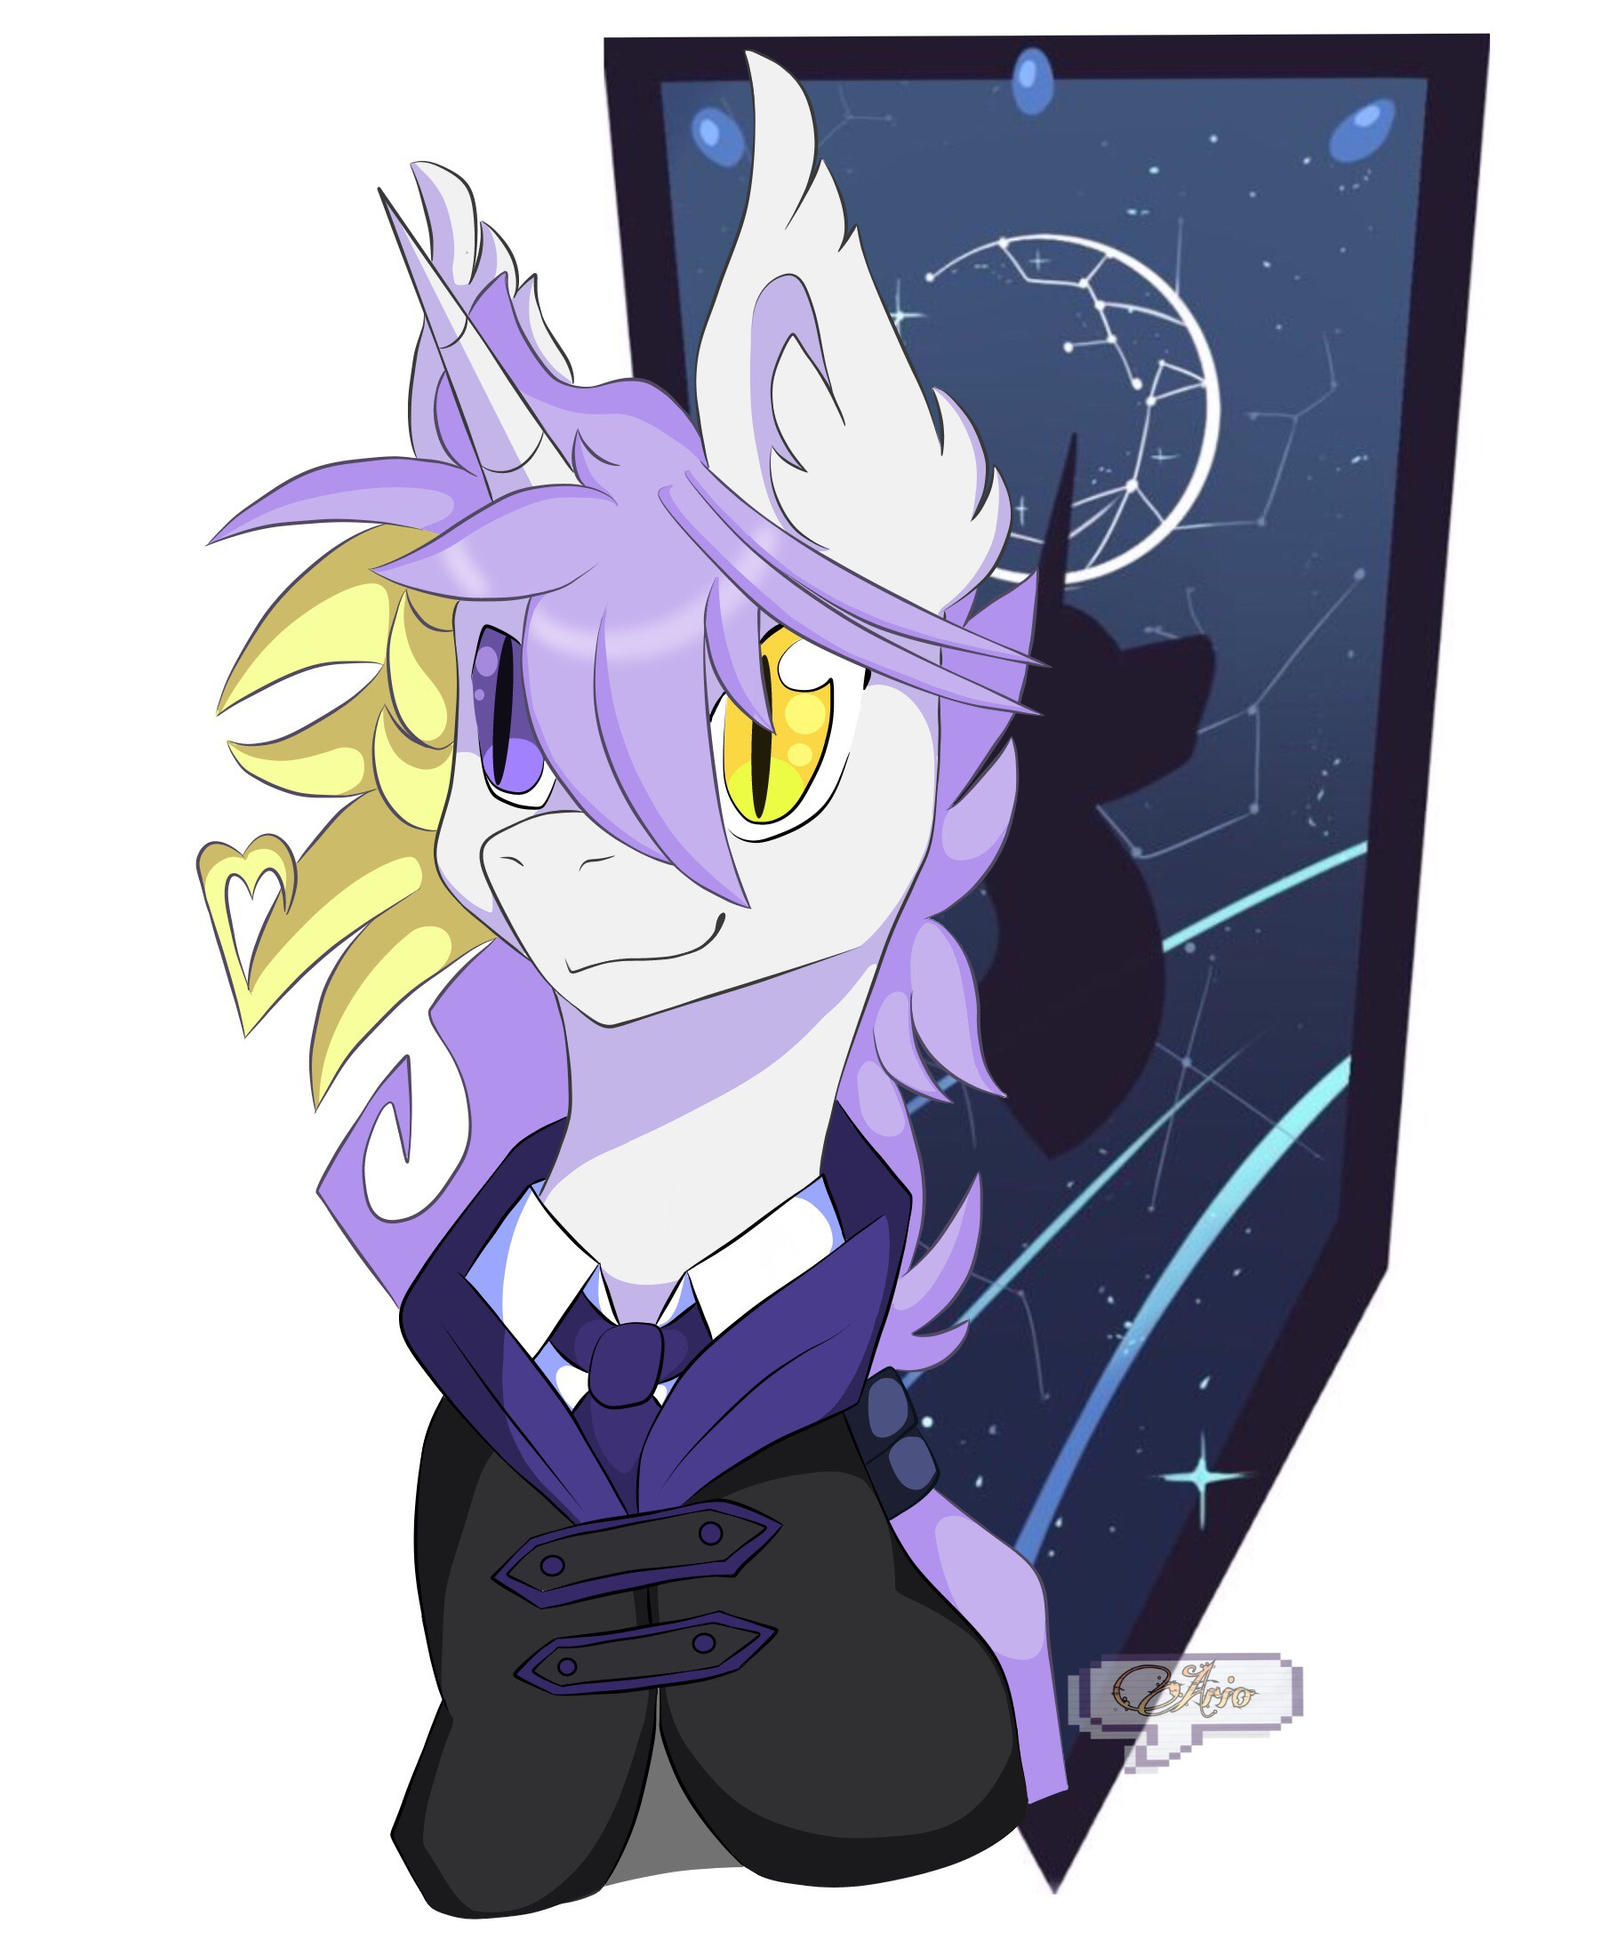 Ready for class by ArioGrimmRe